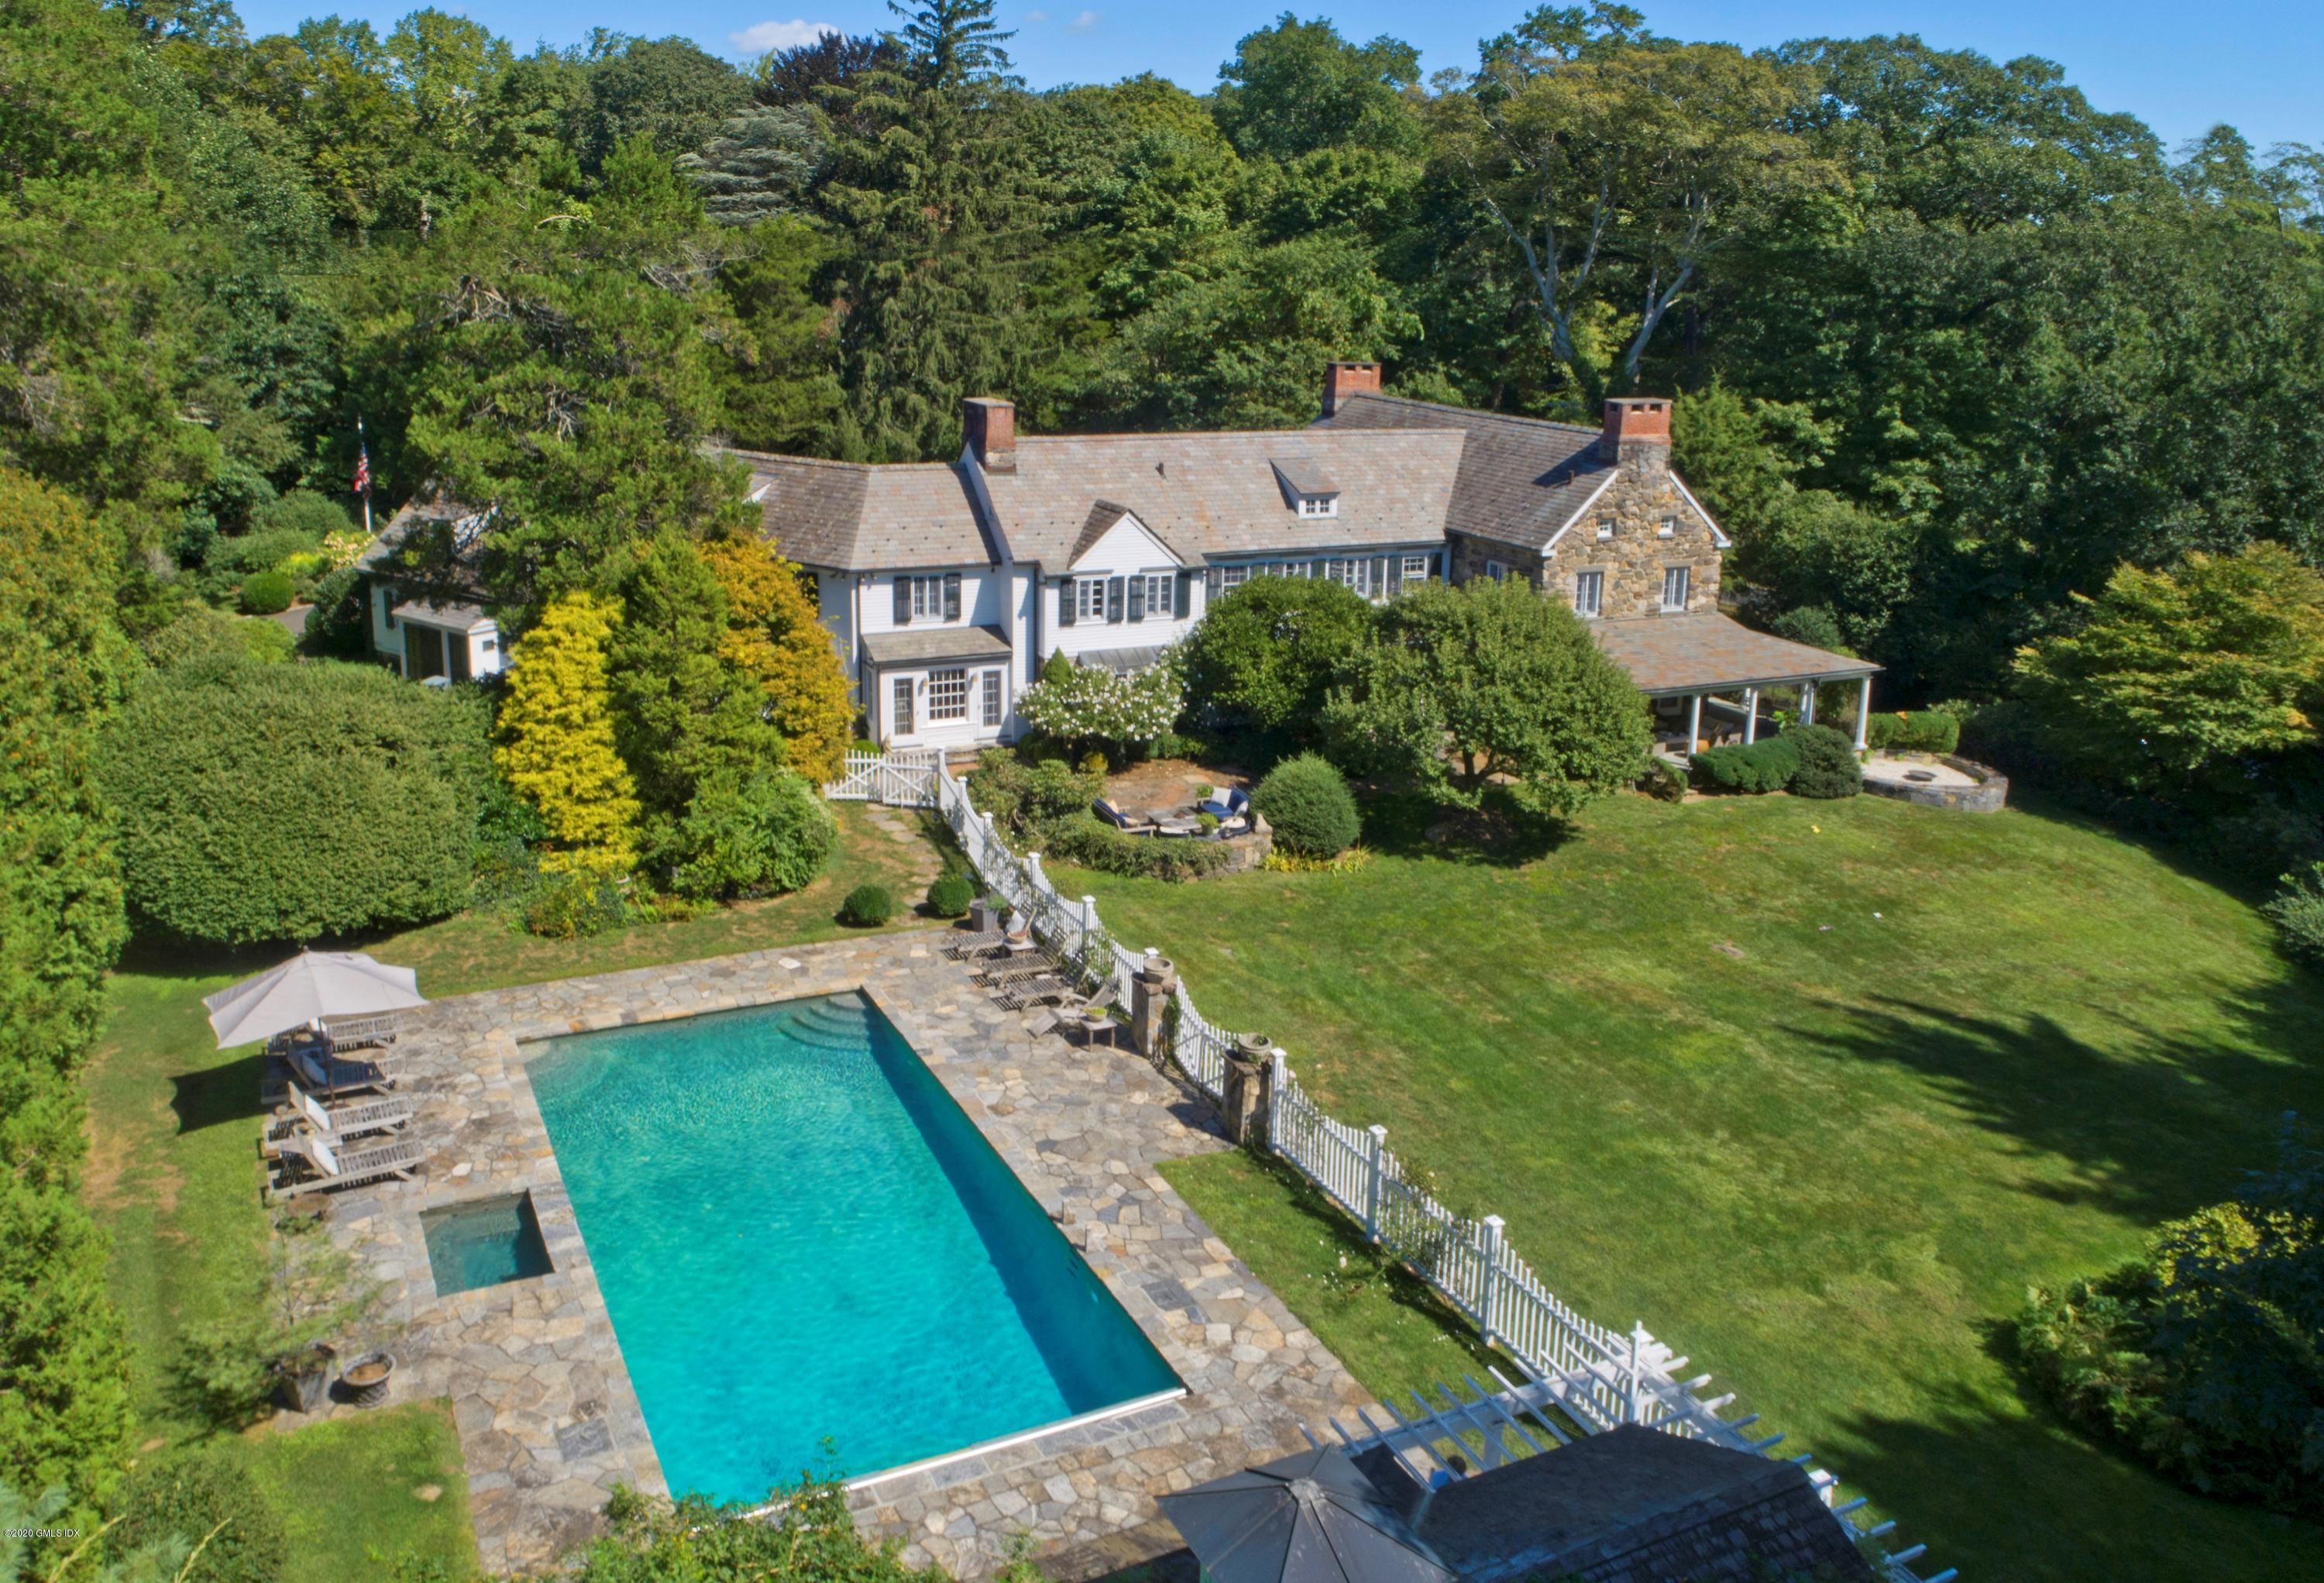 9 Knollwood Drive, Greenwich, Connecticut 06830, 5 Bedrooms Bedrooms, ,6 BathroomsBathrooms,Single family,For sale,Knollwood,110753